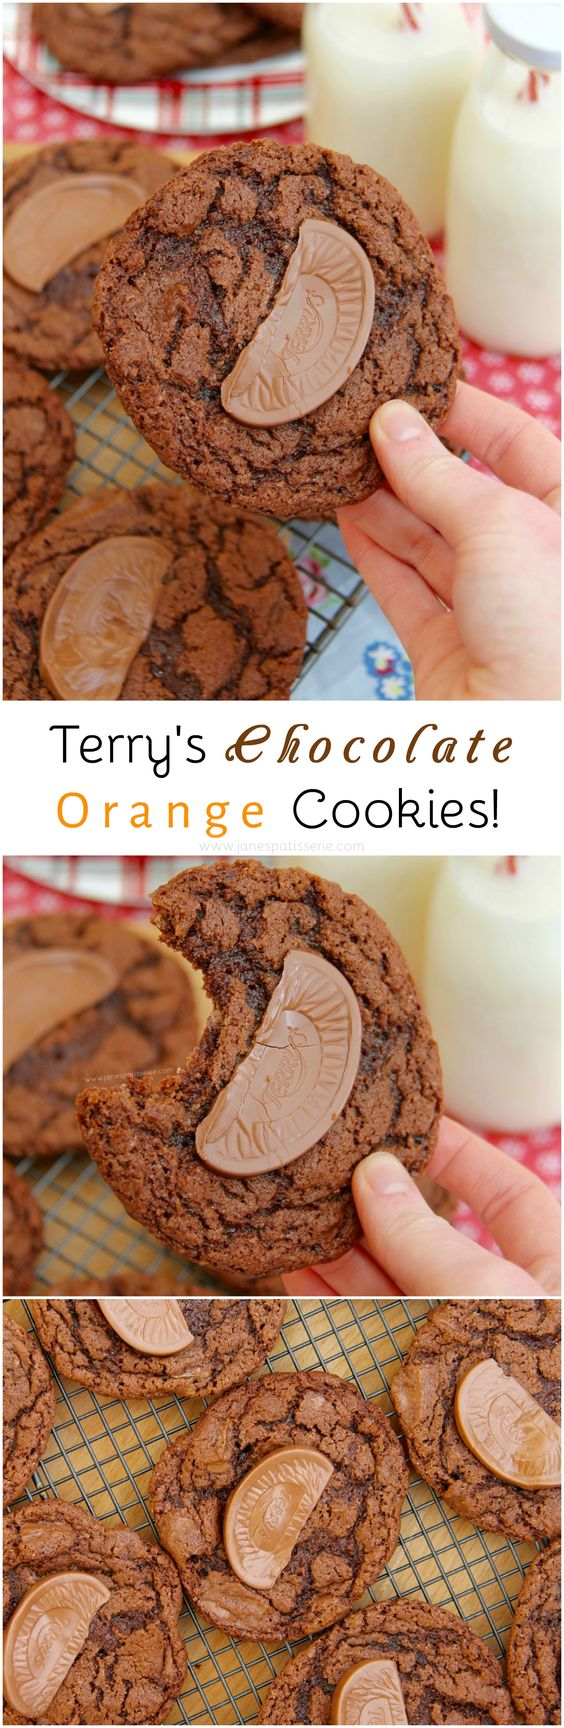 Terry's Chocolate Orange Cookies!  Delicious Moist & Crunchy Cookies full to…